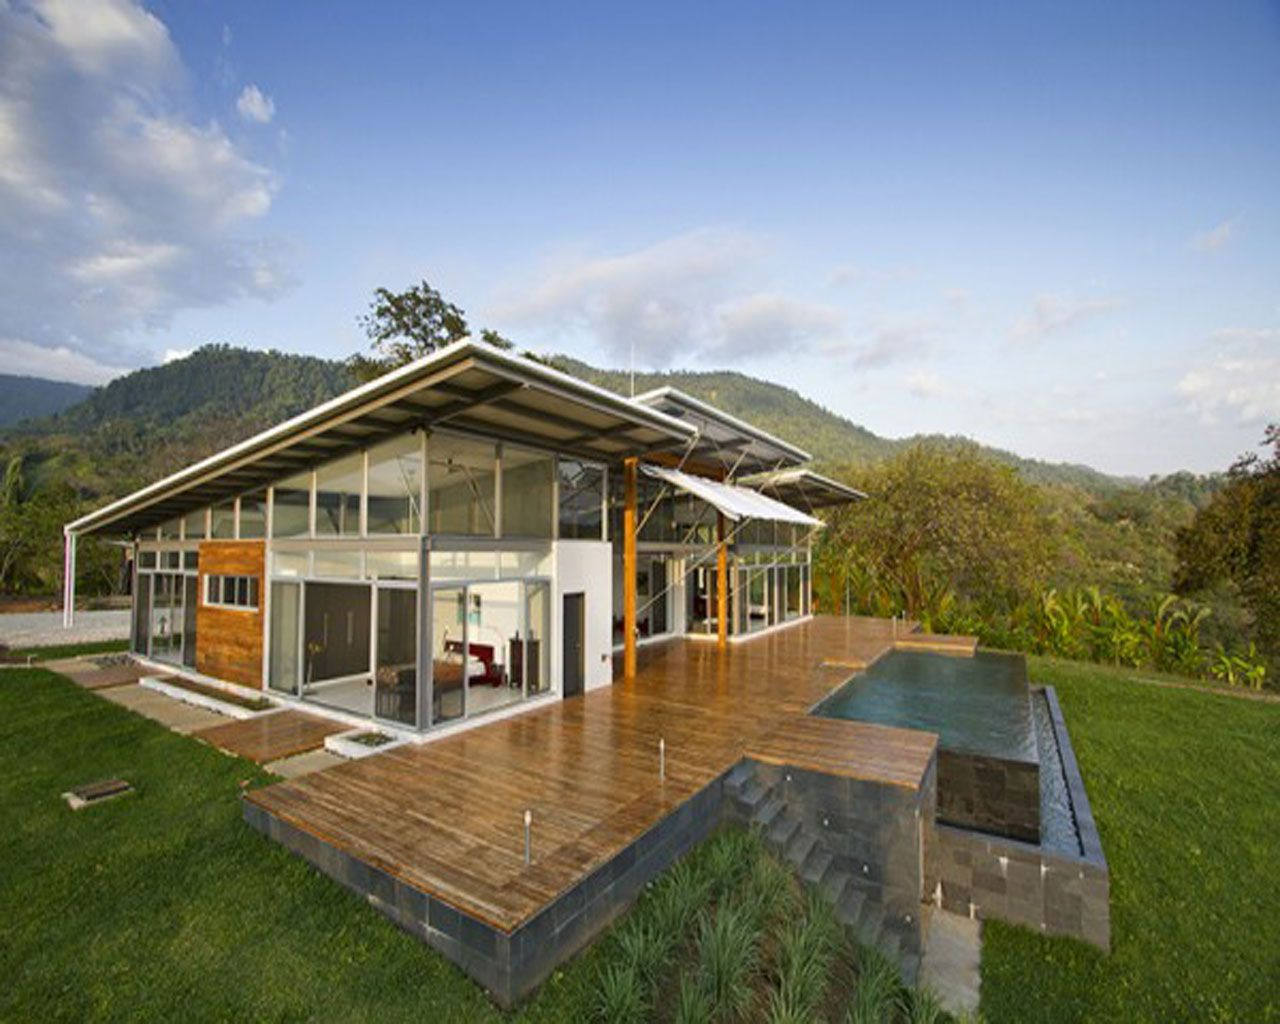 1000+ images about houses on Pinterest - ^